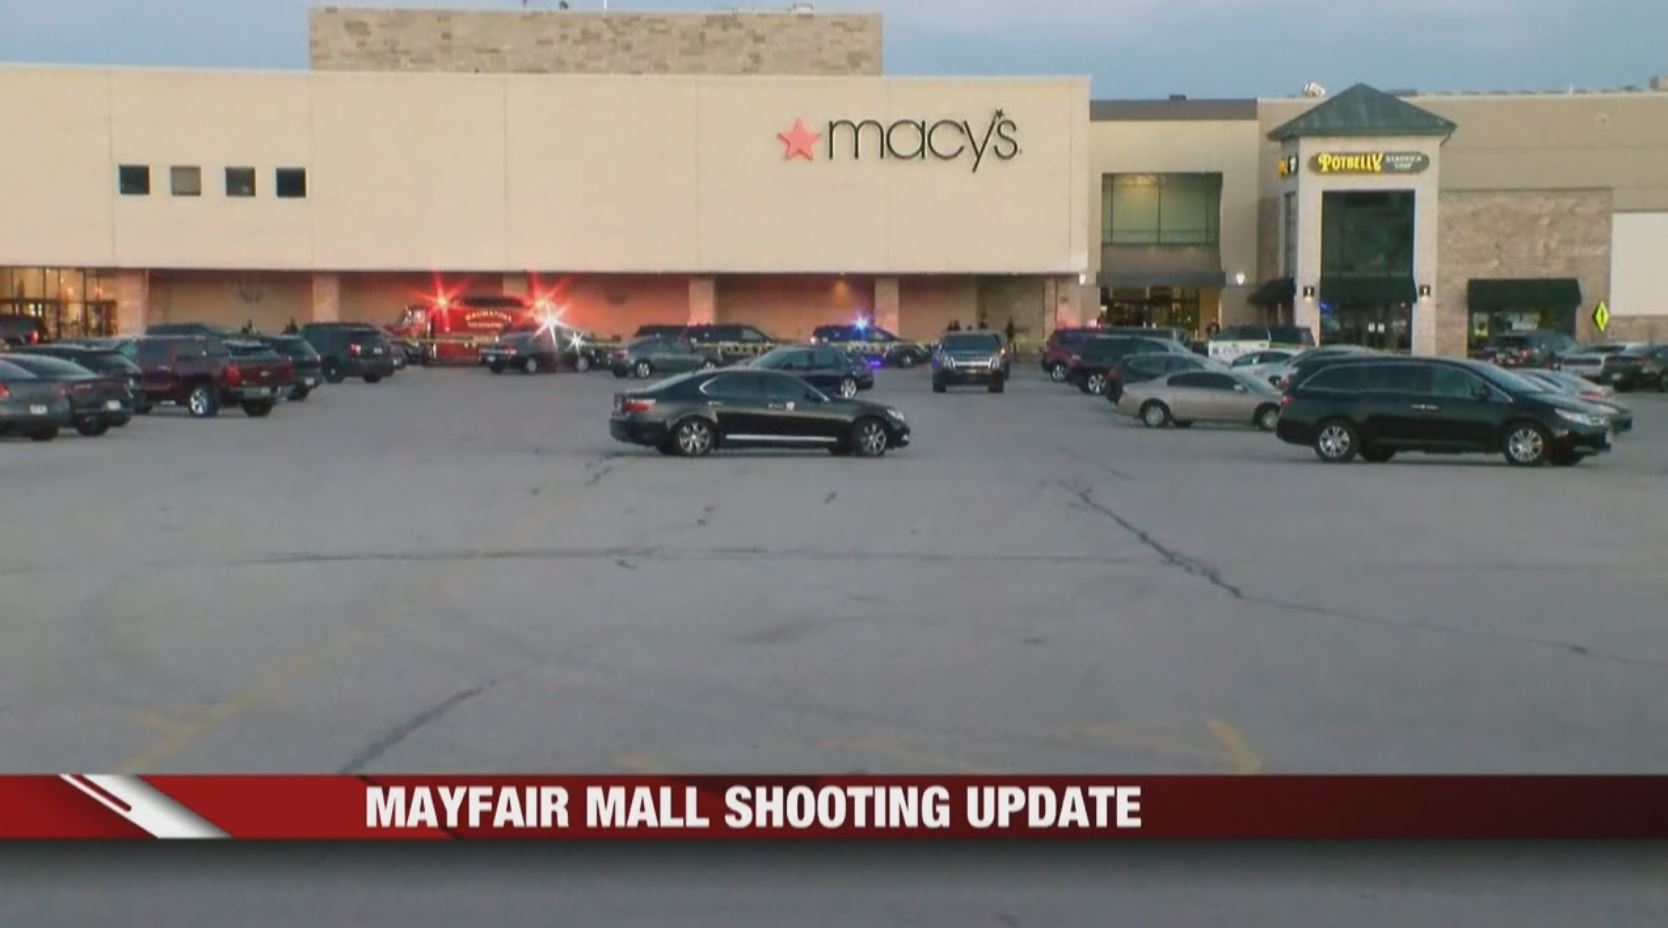 15-year-old arrested in connection with Mayfair Mall shooting